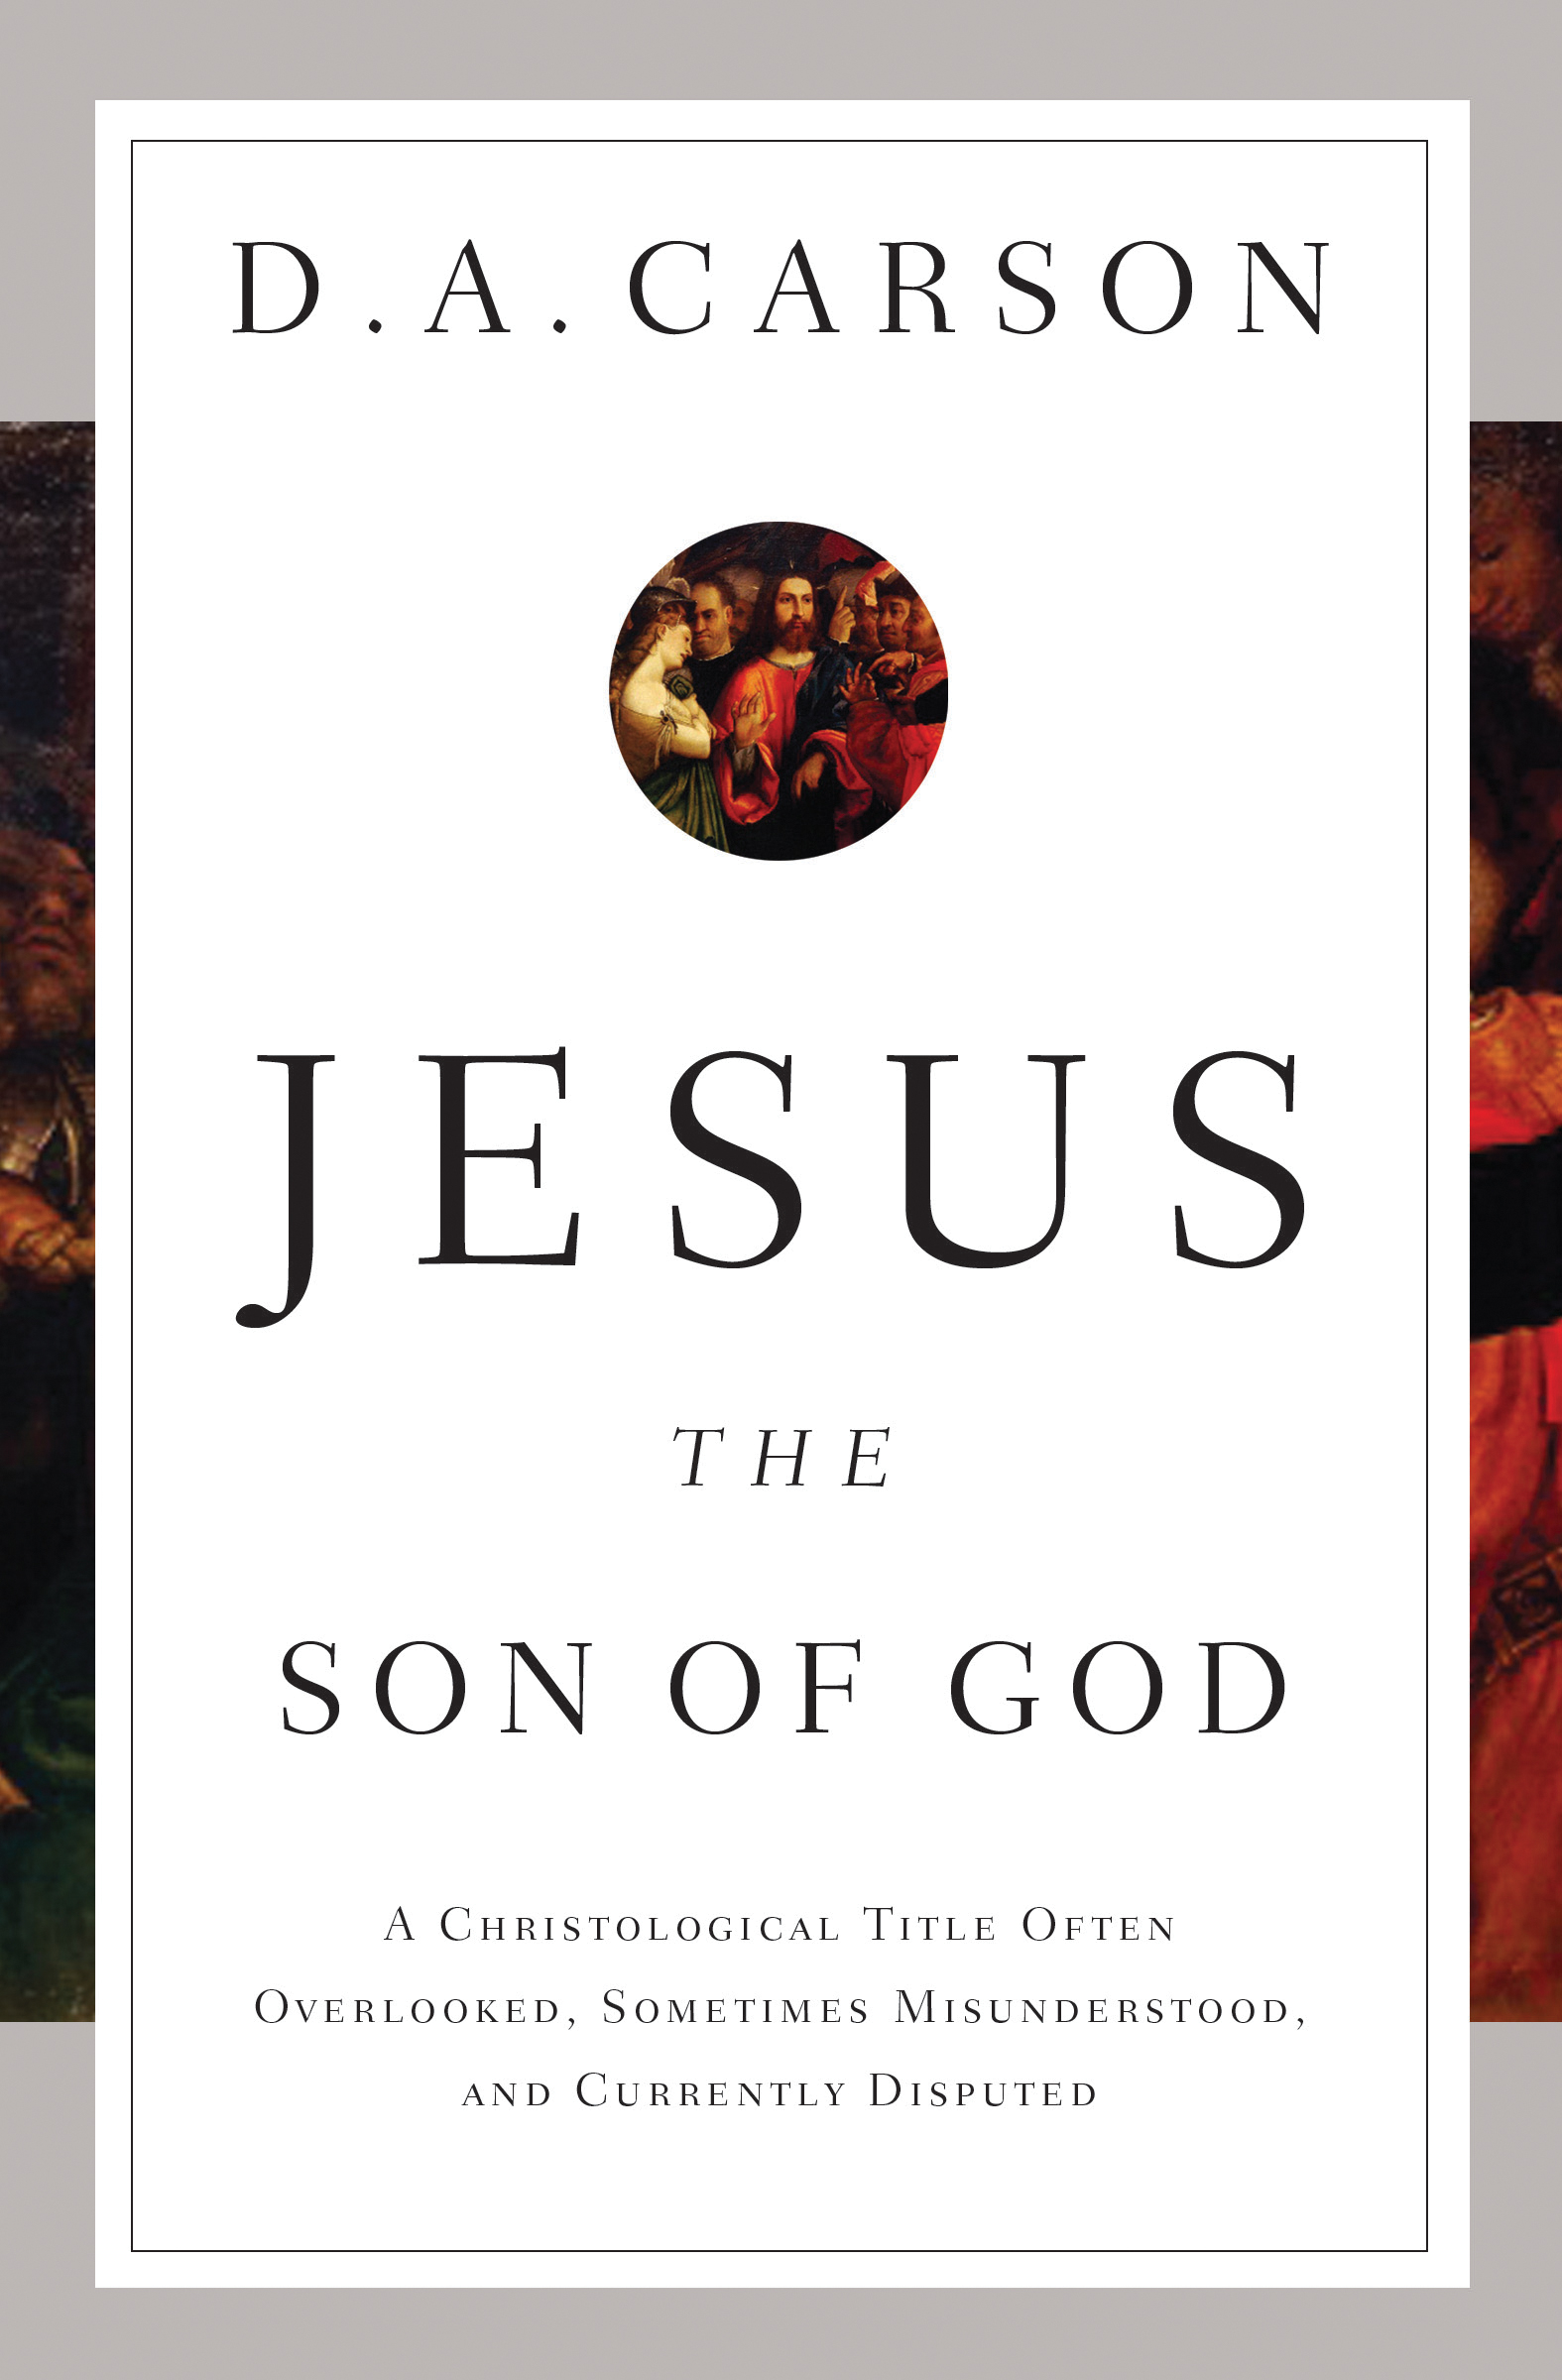 Jesus the Son of God A Christological Title Often Overlooked, Sometimes Misunderstood, and Currently Disputed